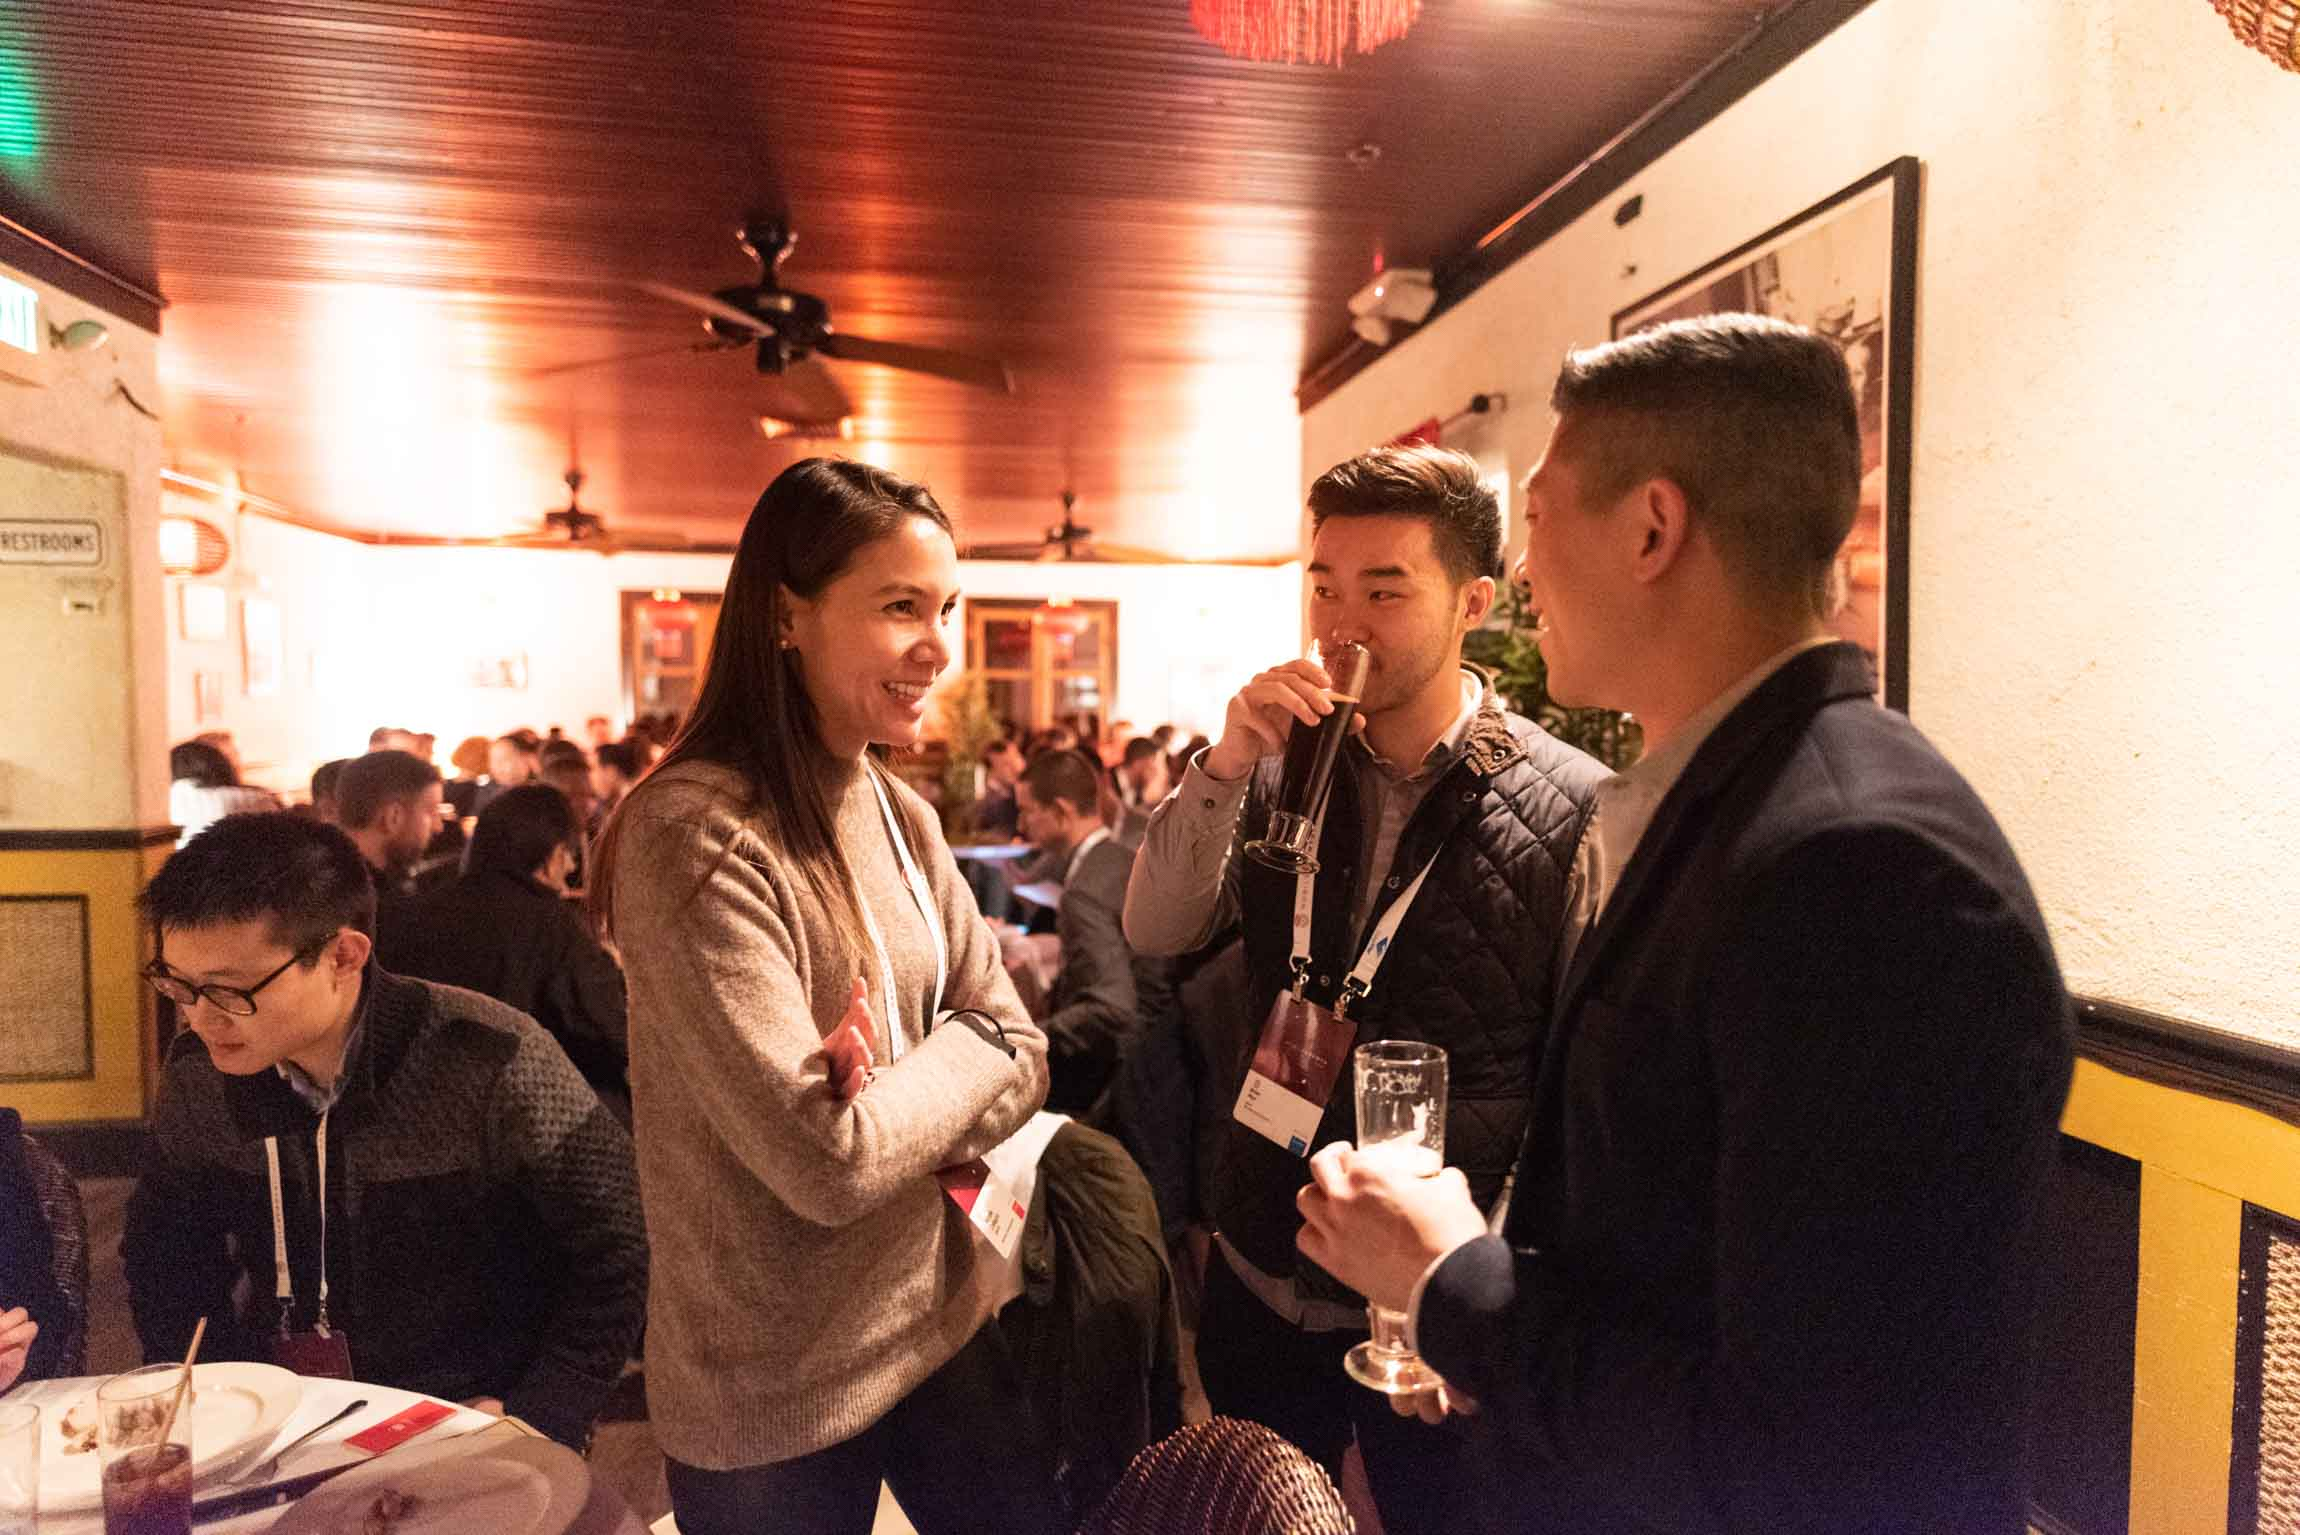 011_mgs2019_sanfrancisco_conference_photography_event.jpg